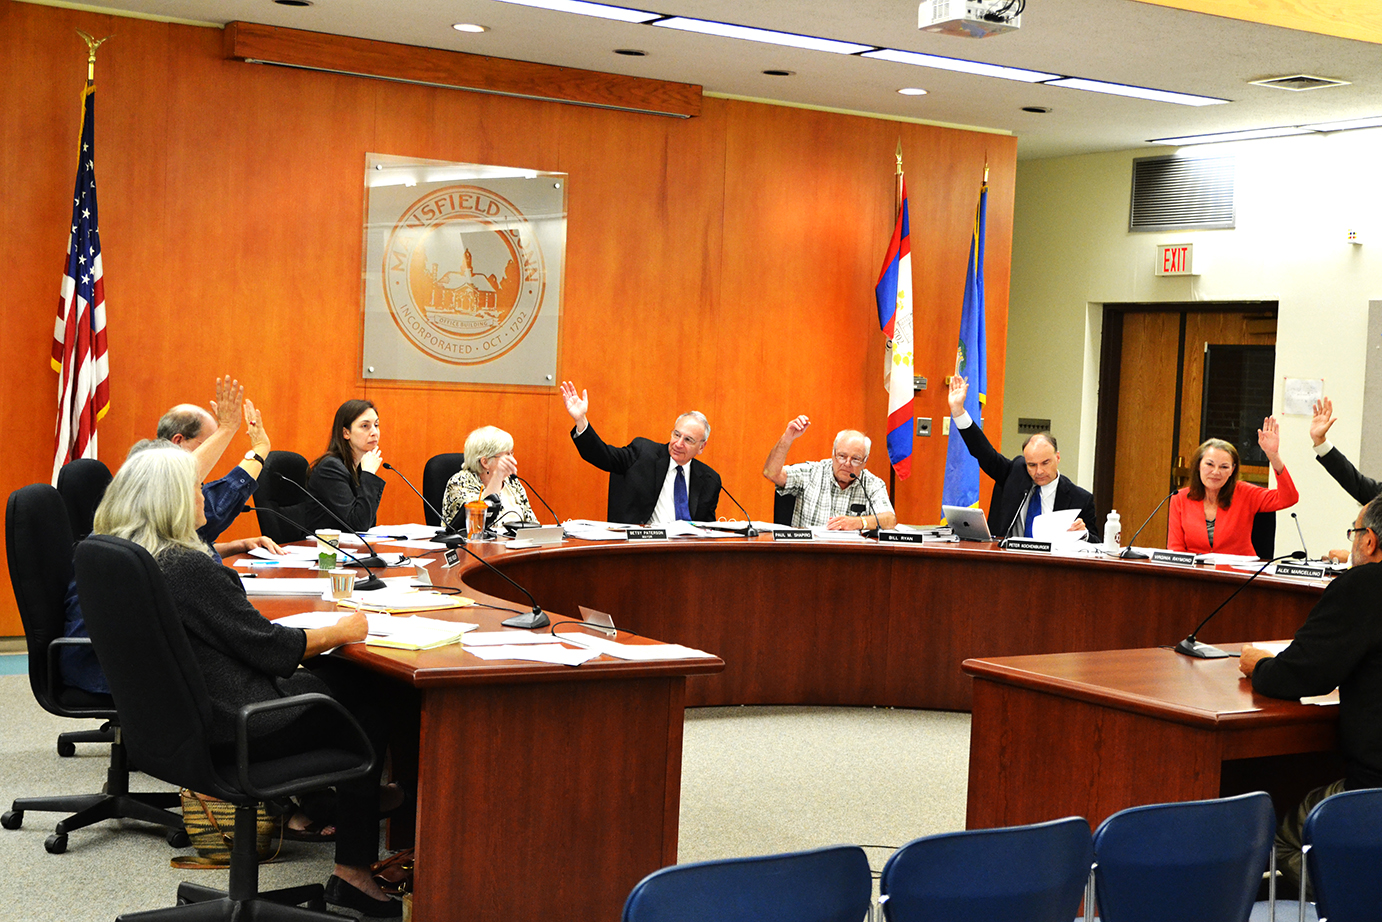 In this photo, members of the Mansfield Town Council raise their hands during a vote at a town council meeting in Mansfield, Connecticut on Monday, Sept. 28, 2015. (The Daily Campus)